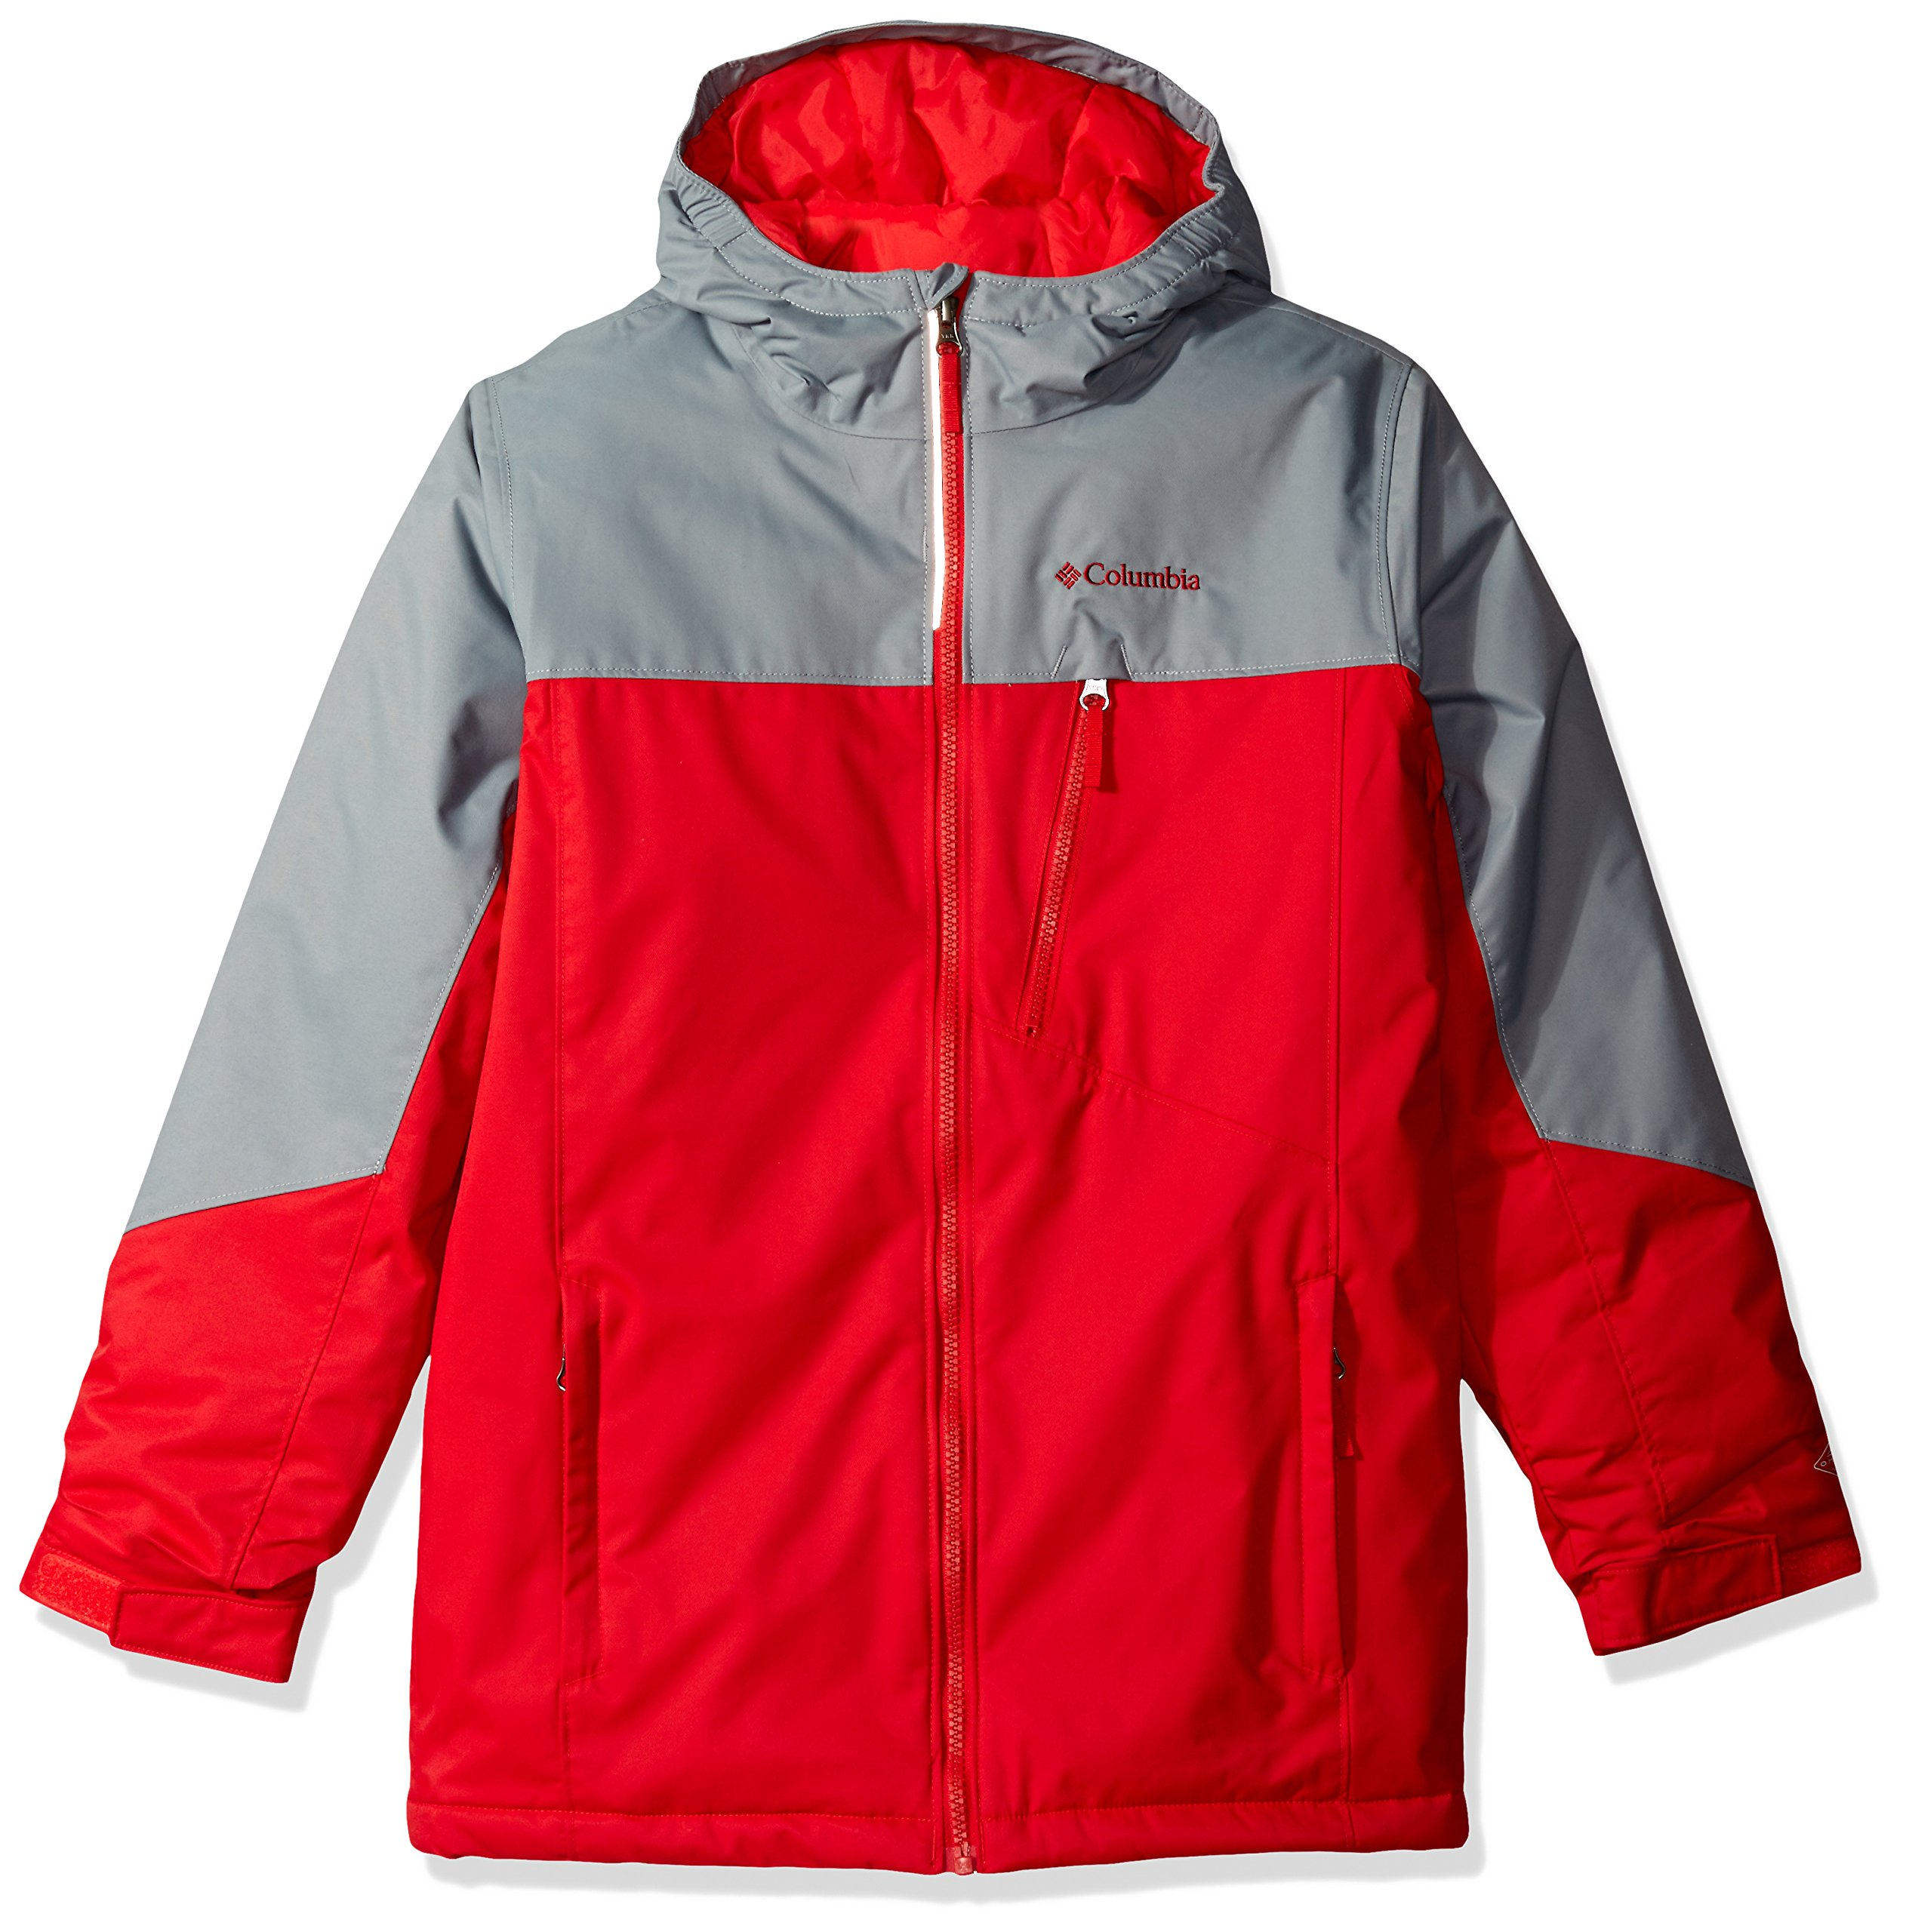 Columbia Boys Double Grab Jacket, Medium, Mountain Red by Columbia